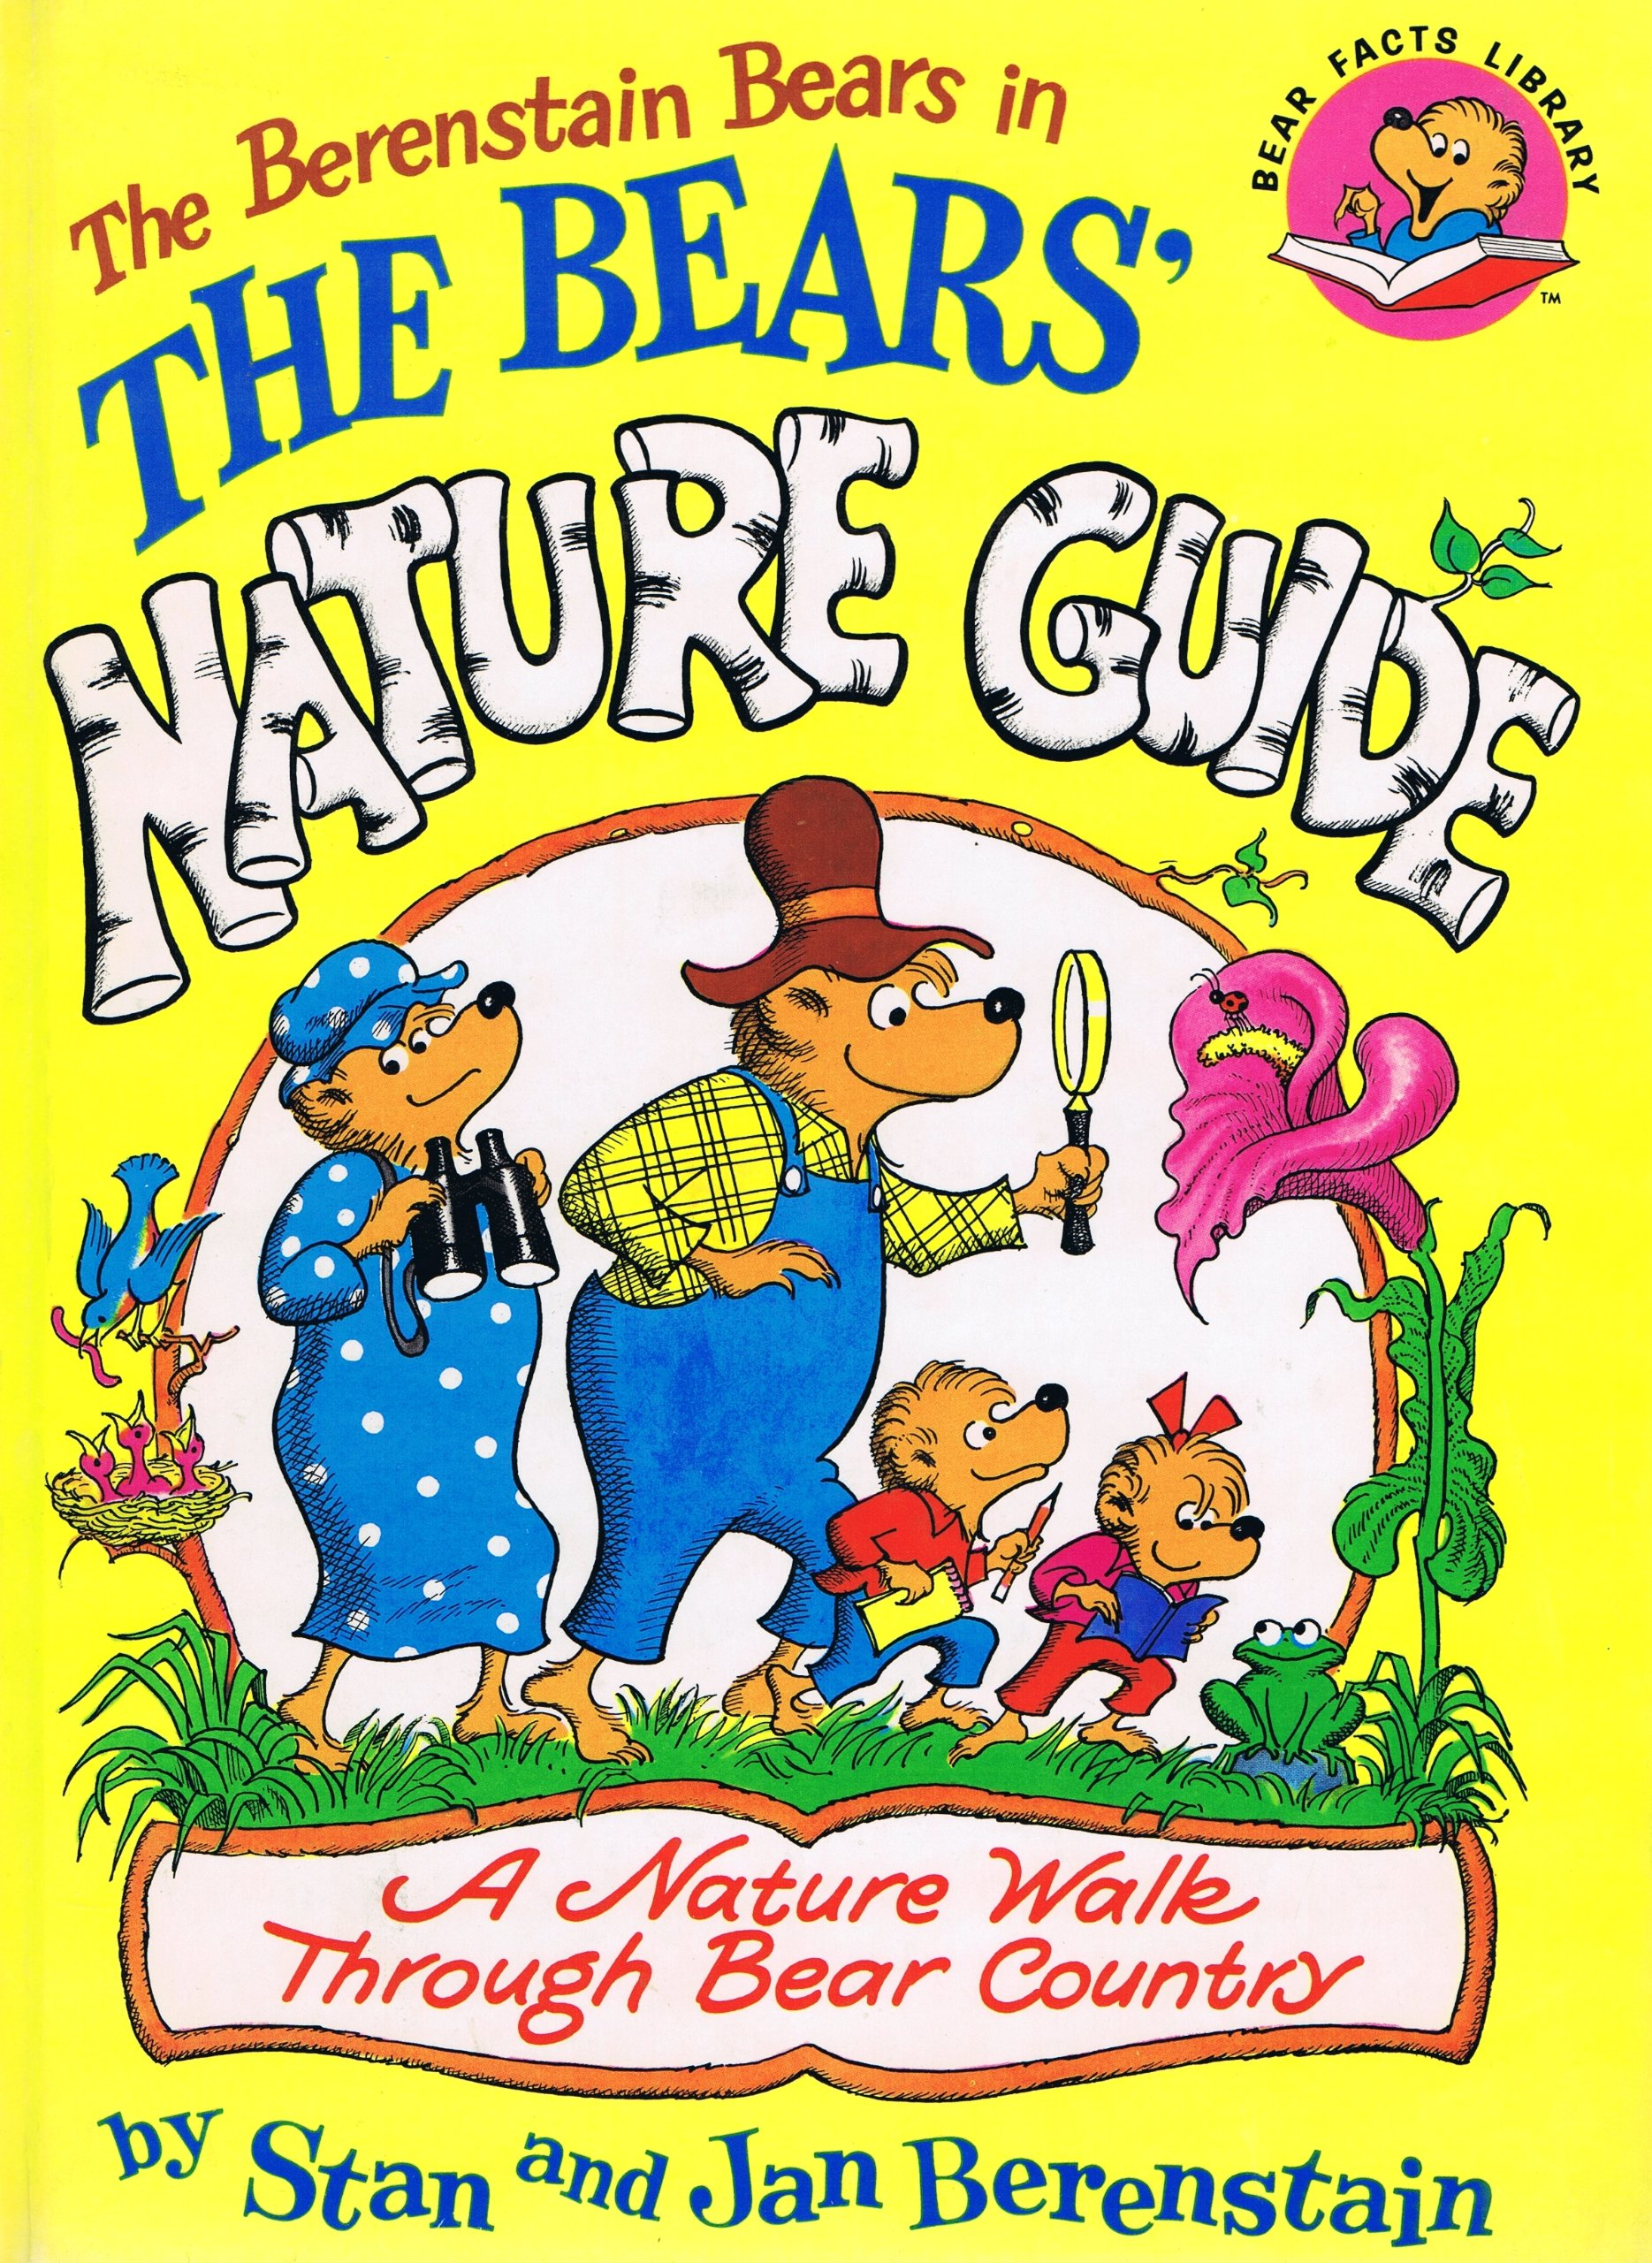 Image result for The Berenstain Bears Nature Guide.